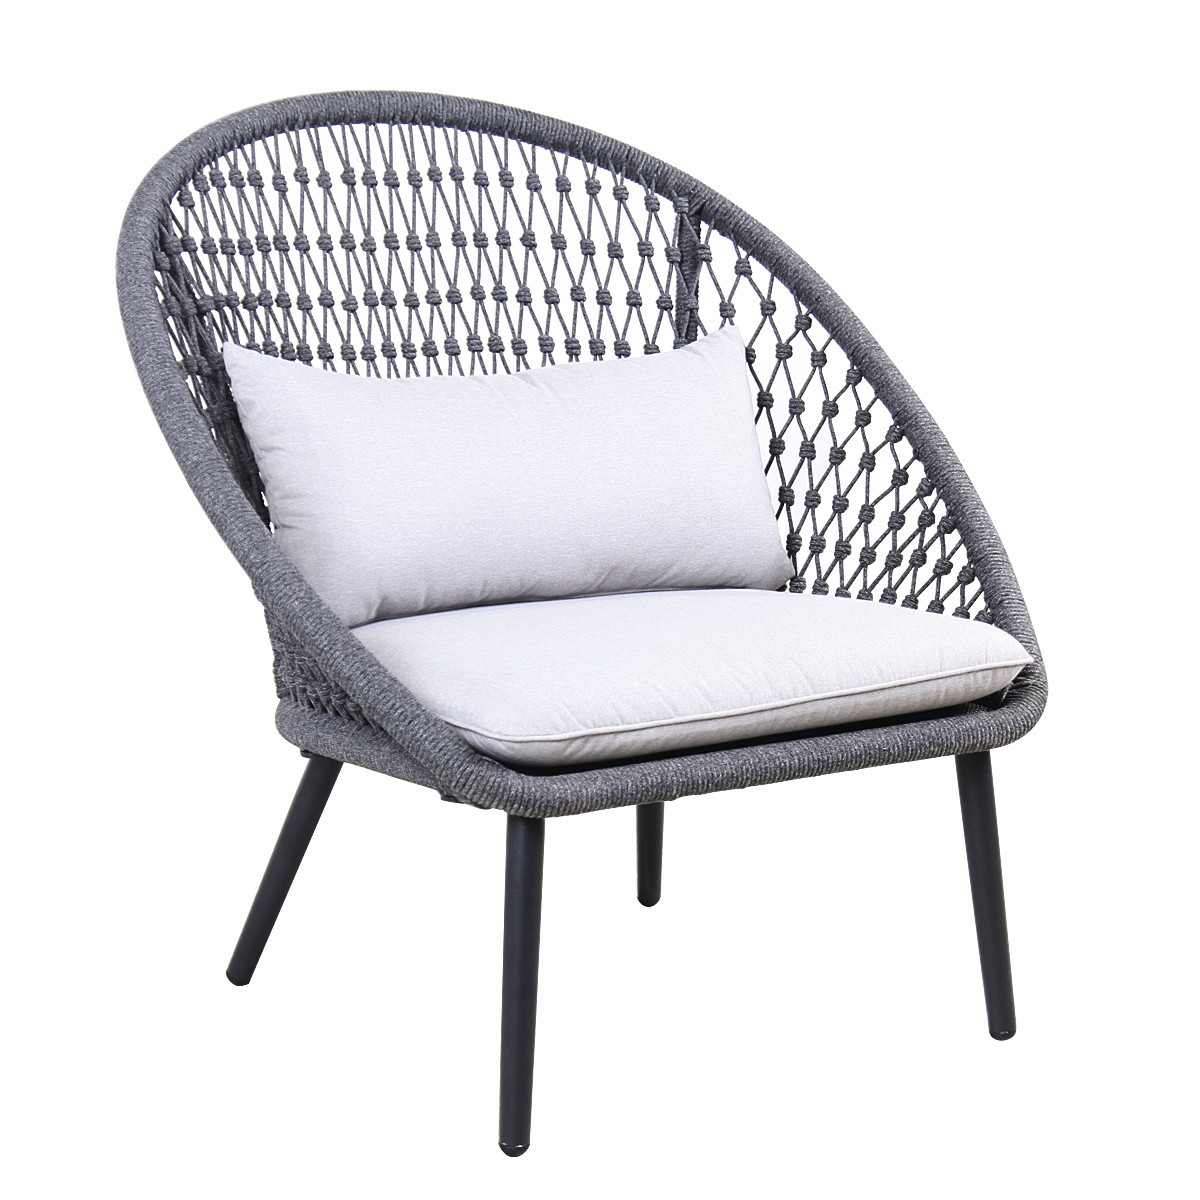 Outdoor Rope Woven Lounge Relaxing Chairs